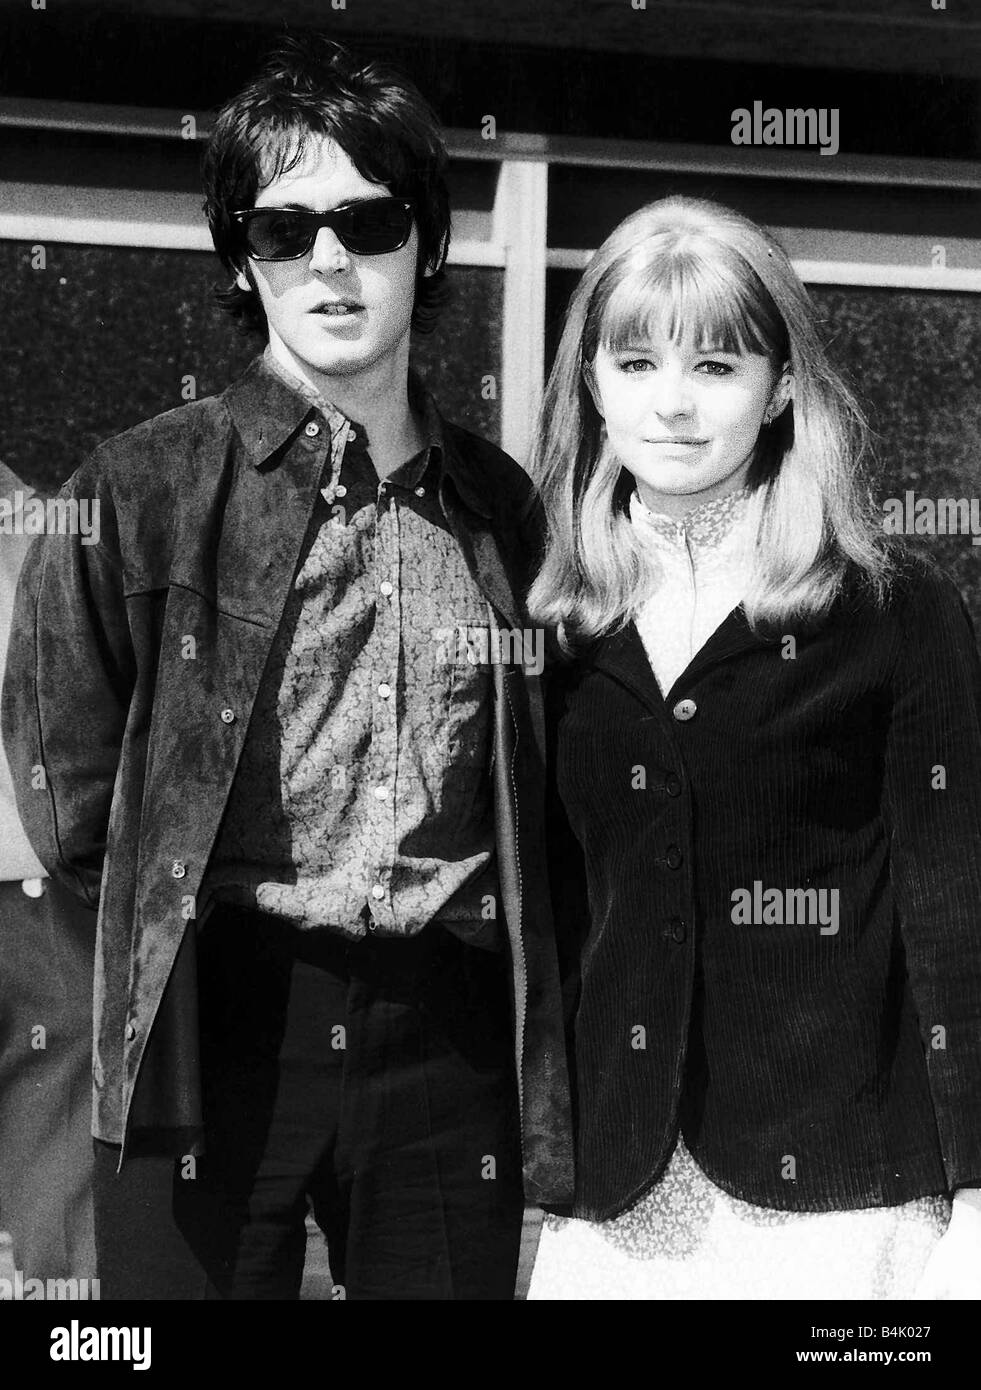 Jane Asher Actress With Paul McCartney Singer Pictured At Heathrow Airport